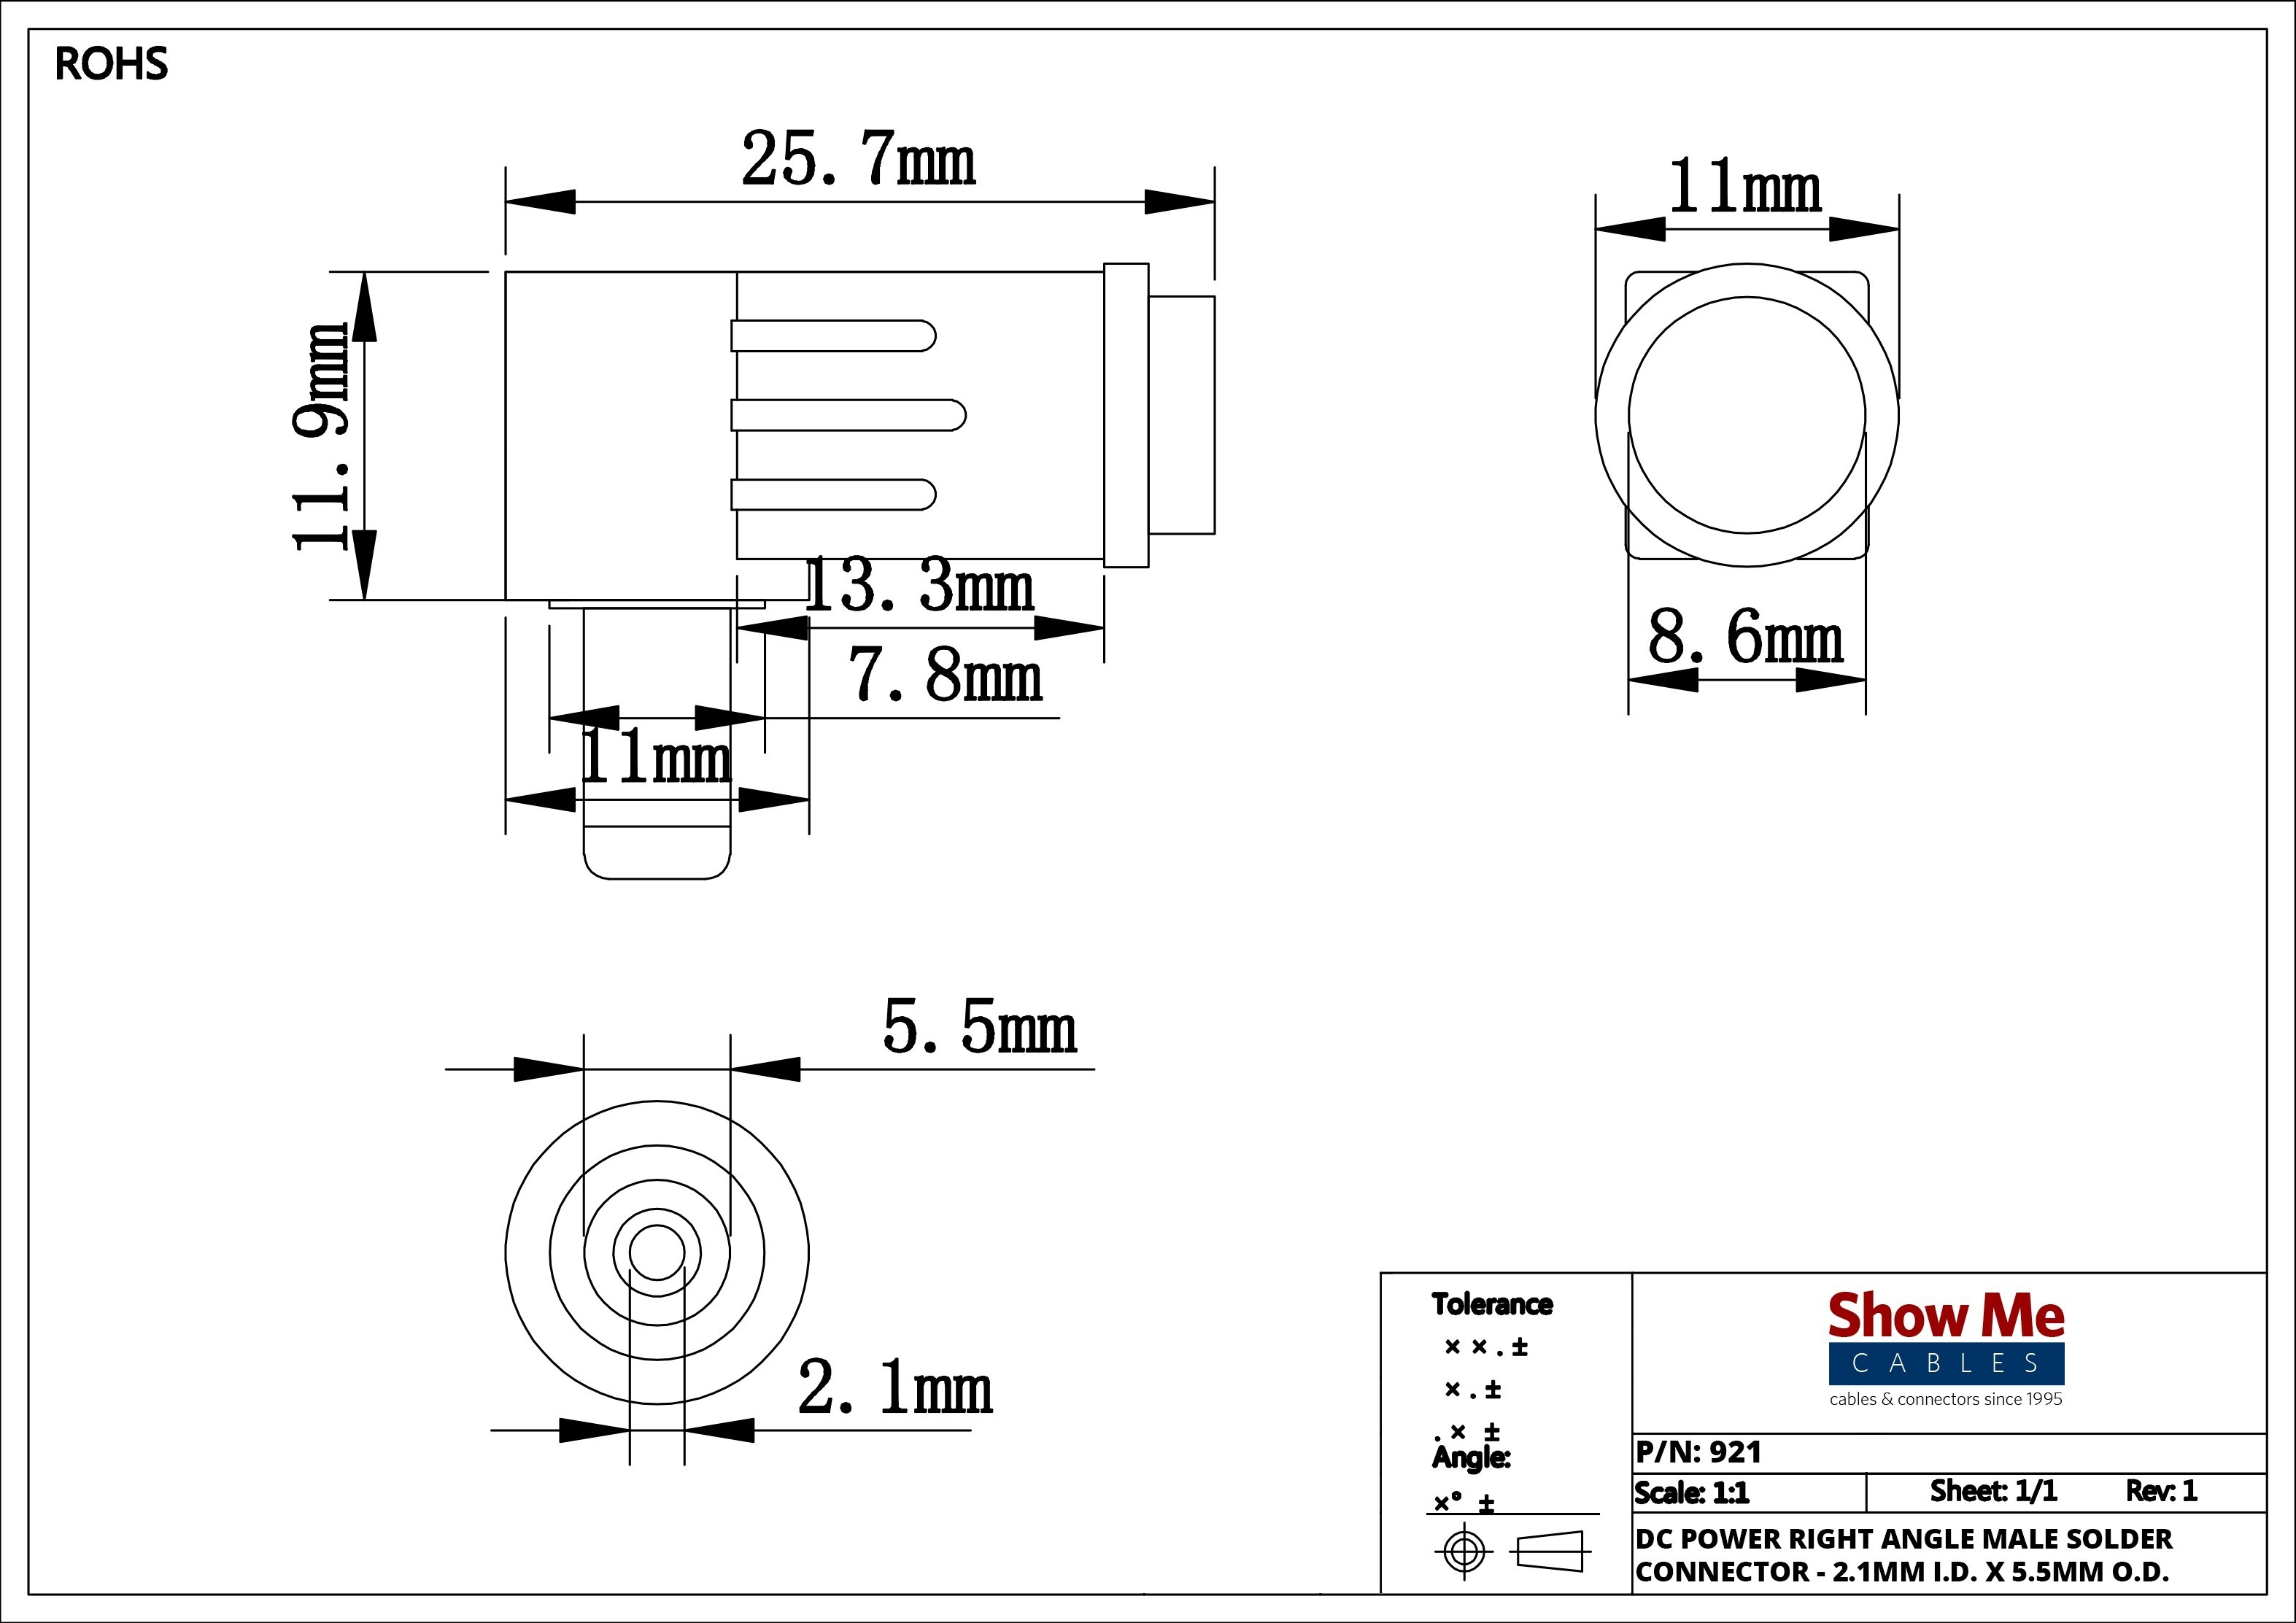 Black Magic Fan Wiring Diagram - Black Magic Fan Wiring Diagram Download 3 5 Mm Jack Wiring Diagram Fresh 2 5mm 16q